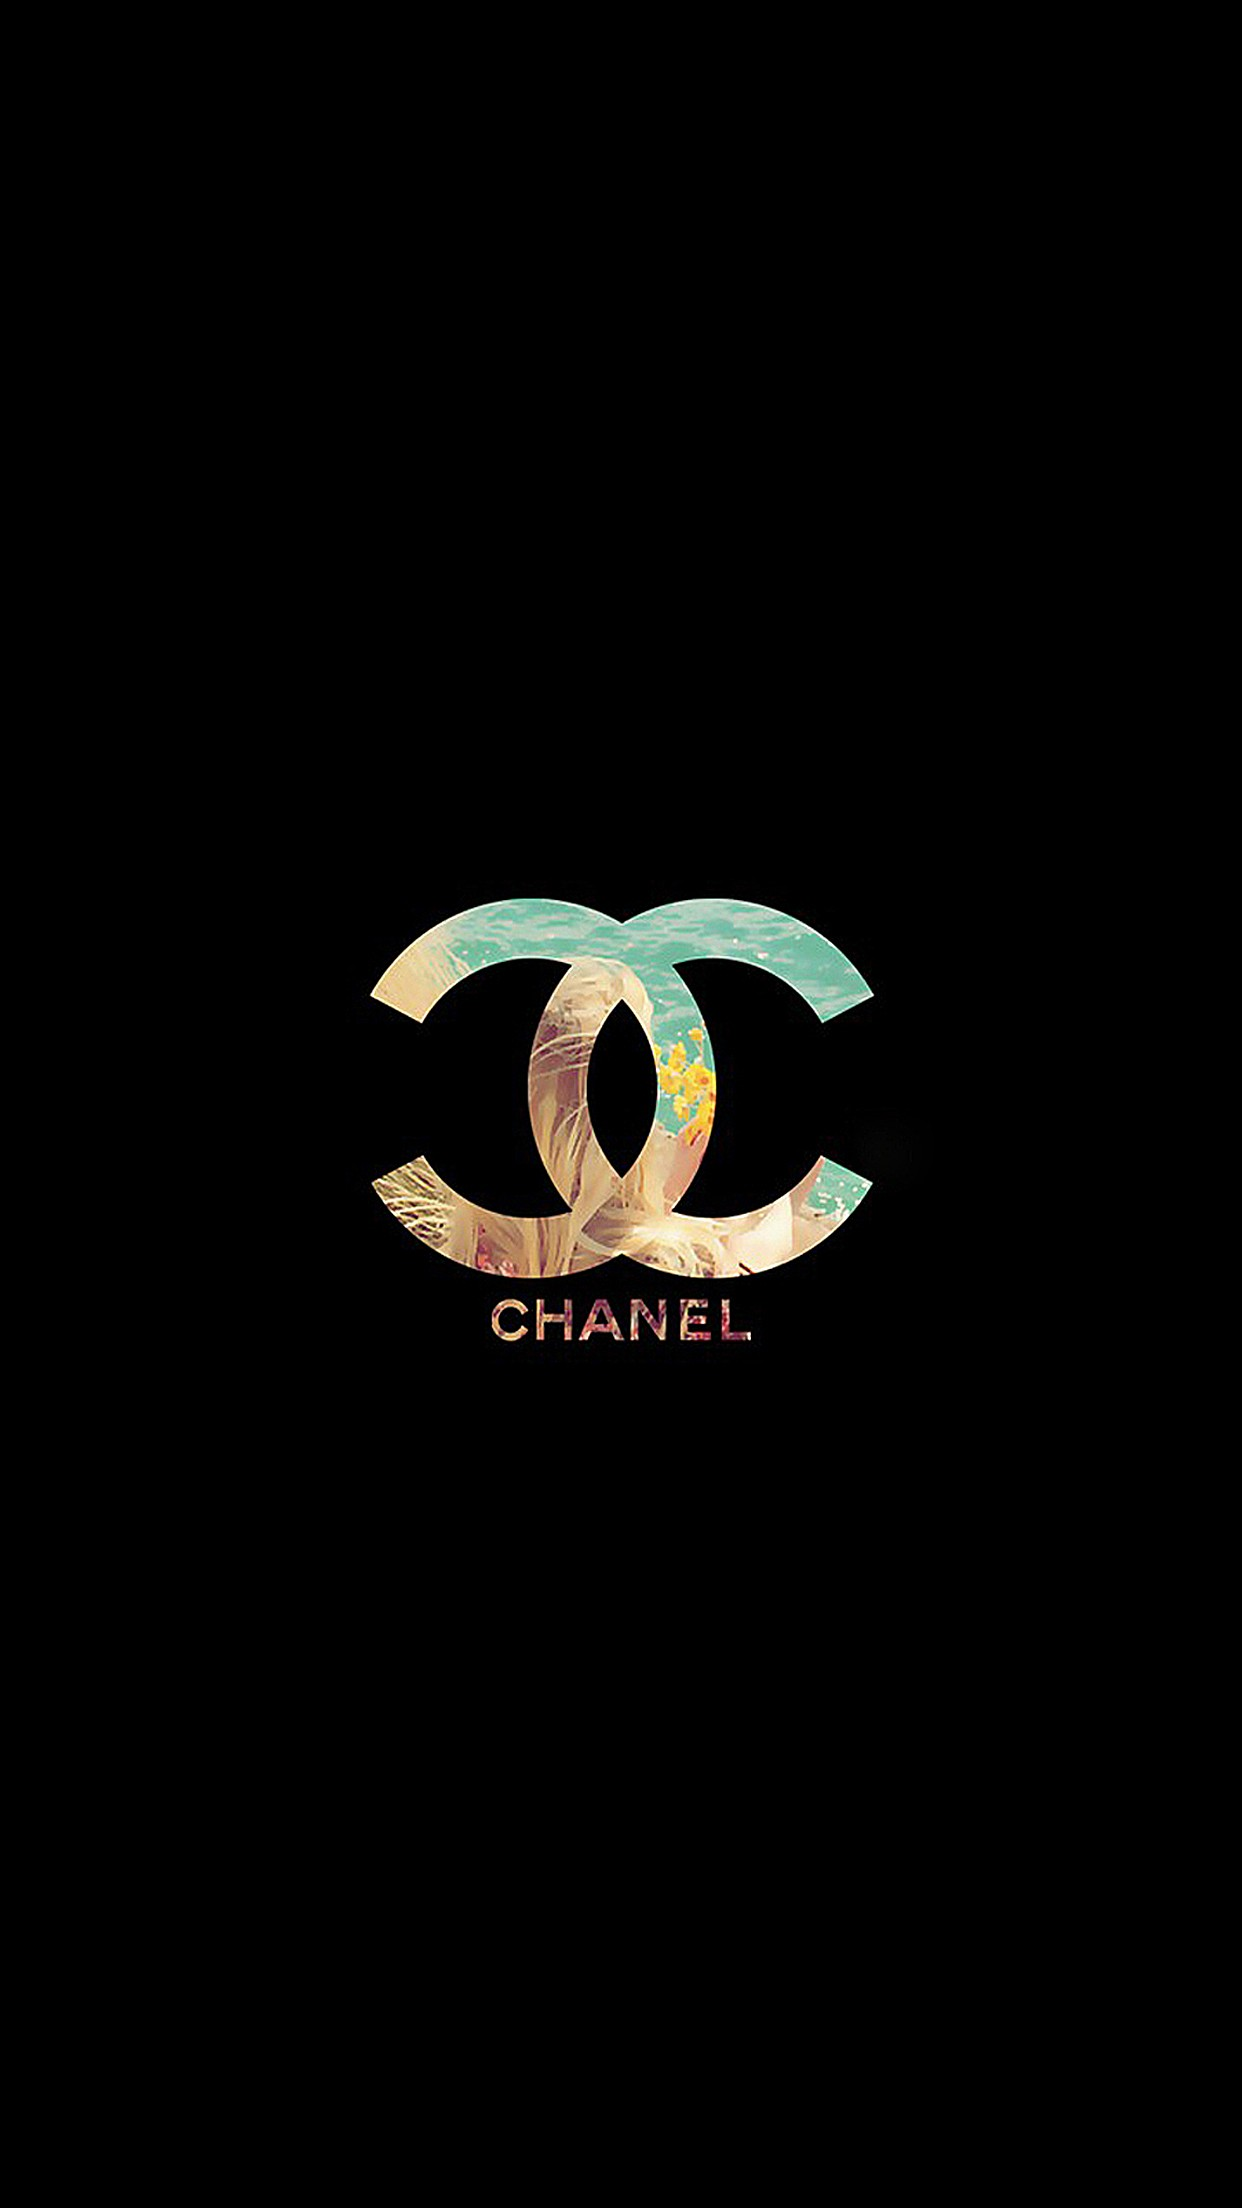 Cute Disney Ipad Wallpaper Luxury Chanel Wallpaper For Iphone X 8 7 6 Free